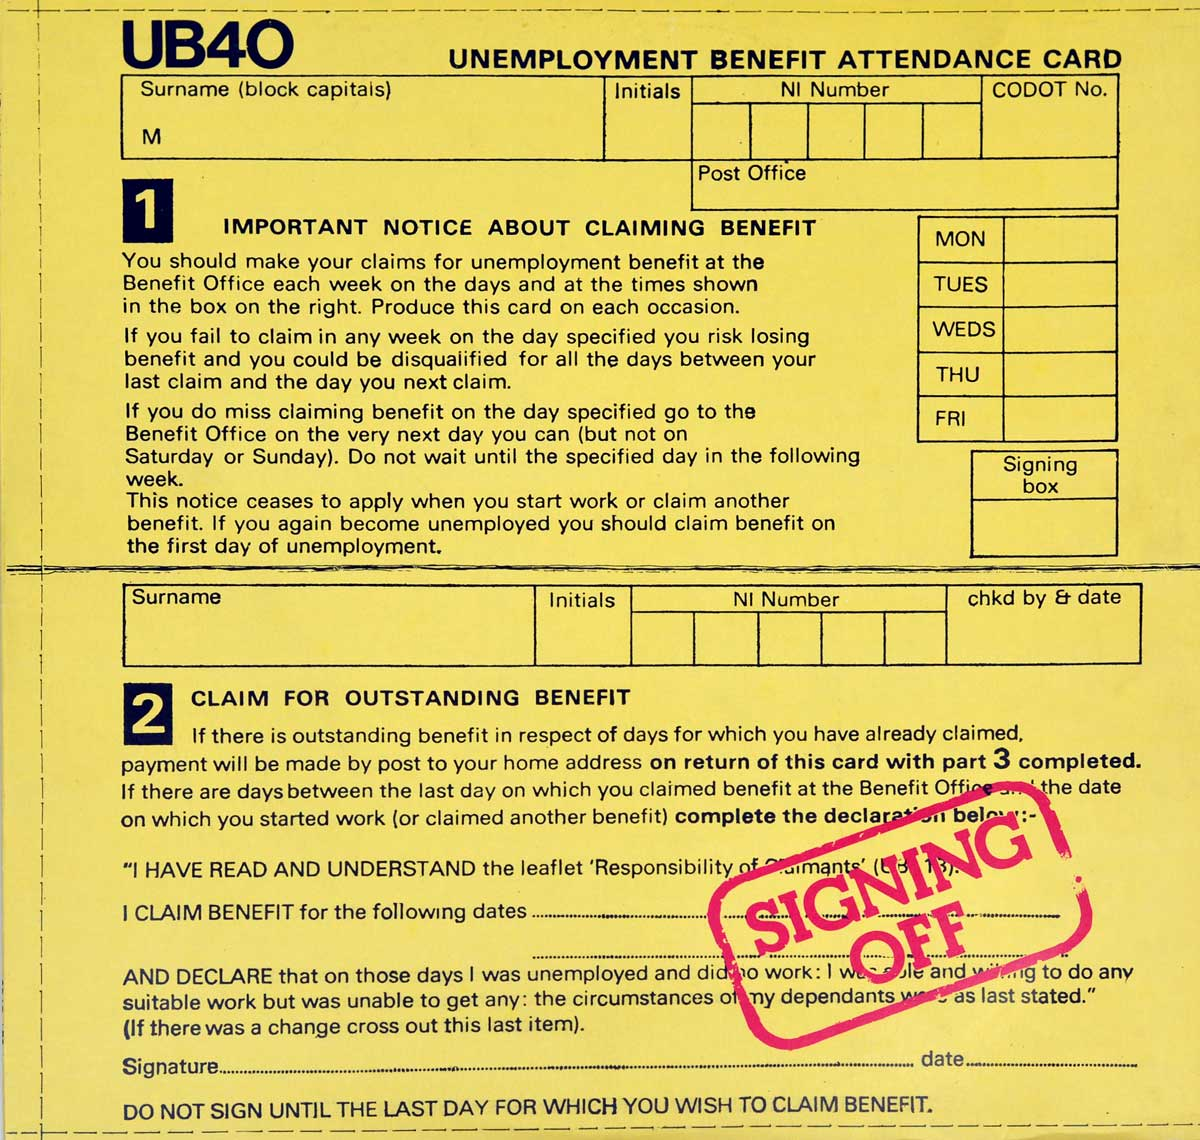 Album Front Cover Photo of UB40 Signing Off